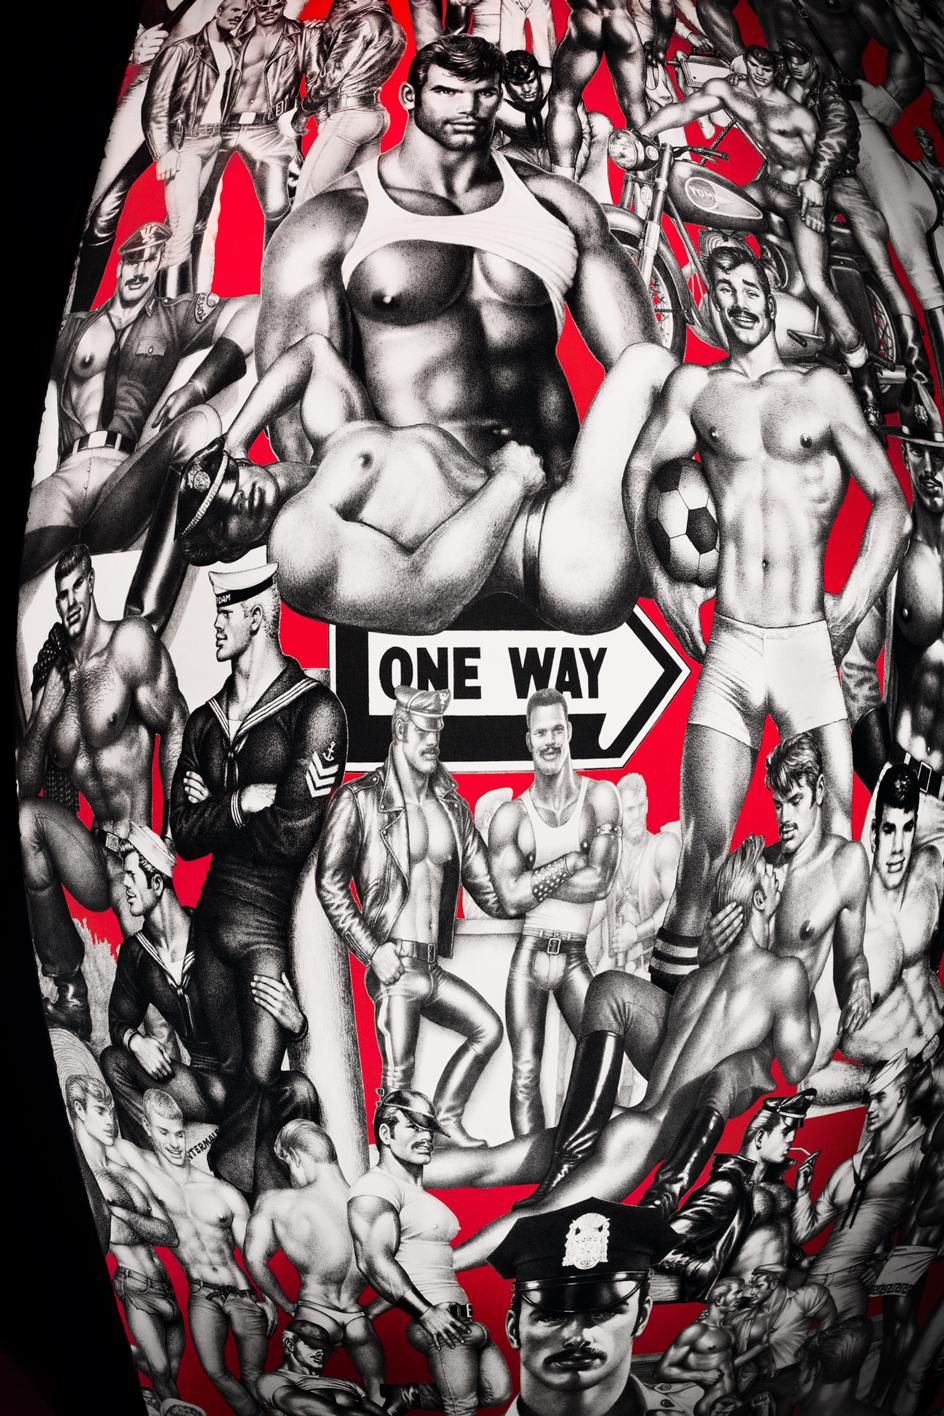 Tom of Finland TAME wallpaper in Fotografiska Red by Flavor Paper. Designed by Tom of Finland, Michael Reynolds and Hoffman Creative. Exclusively at The Shop at Fotografiska